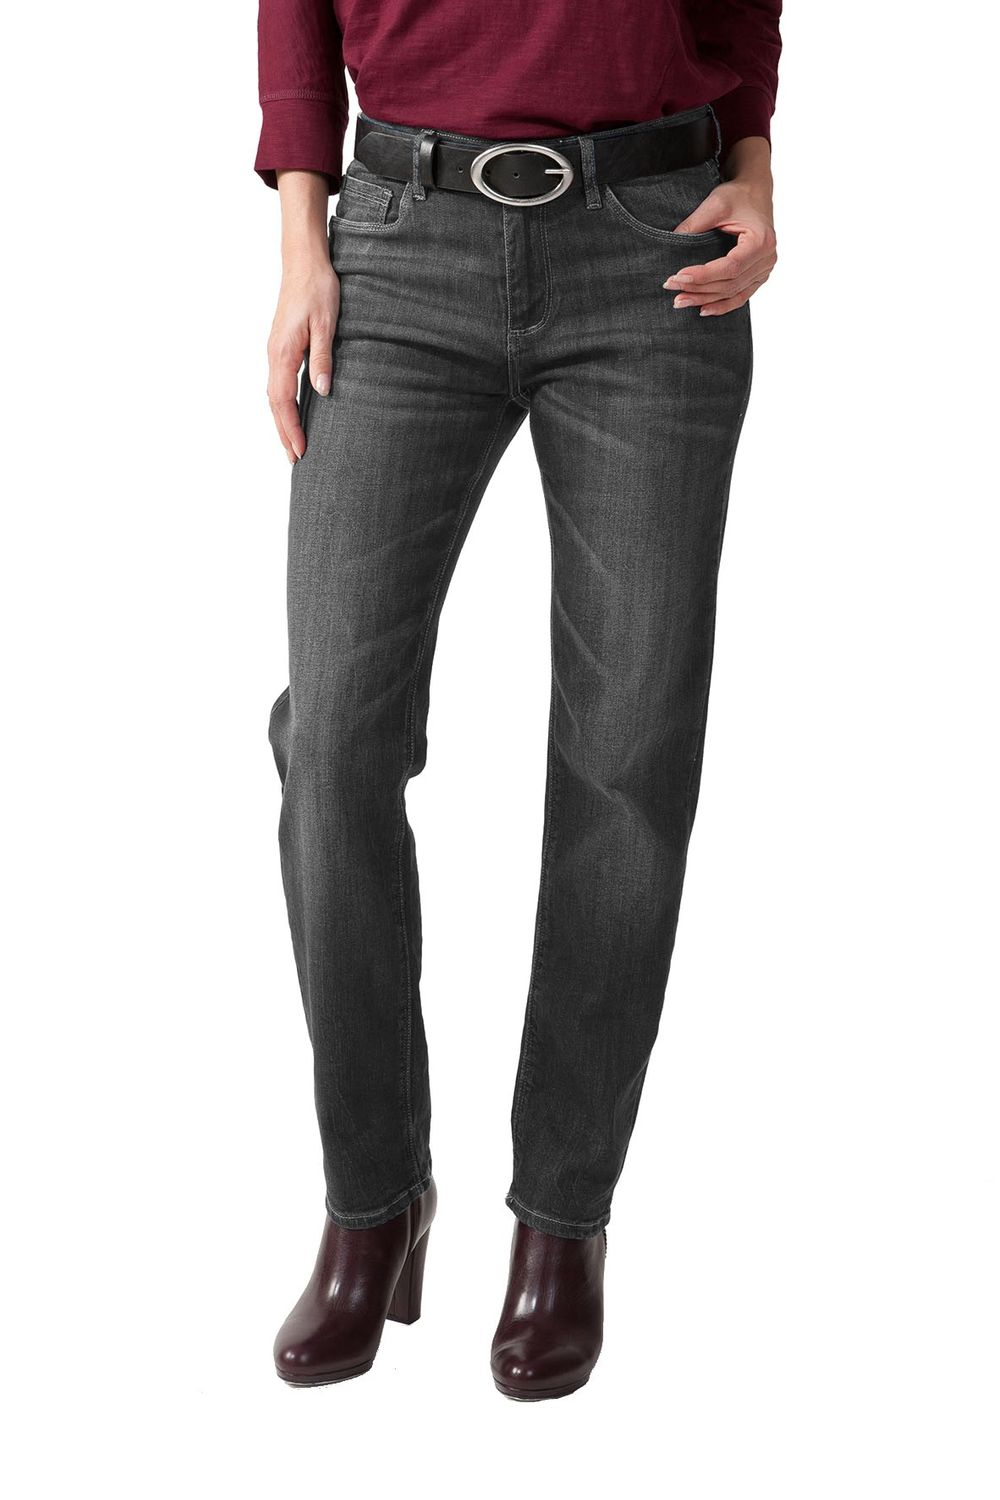 Stooker - Damen 5 Pocket Jeans in verschiedenen Farben, Slim Fit Stretch, Zermatt (1150) 001